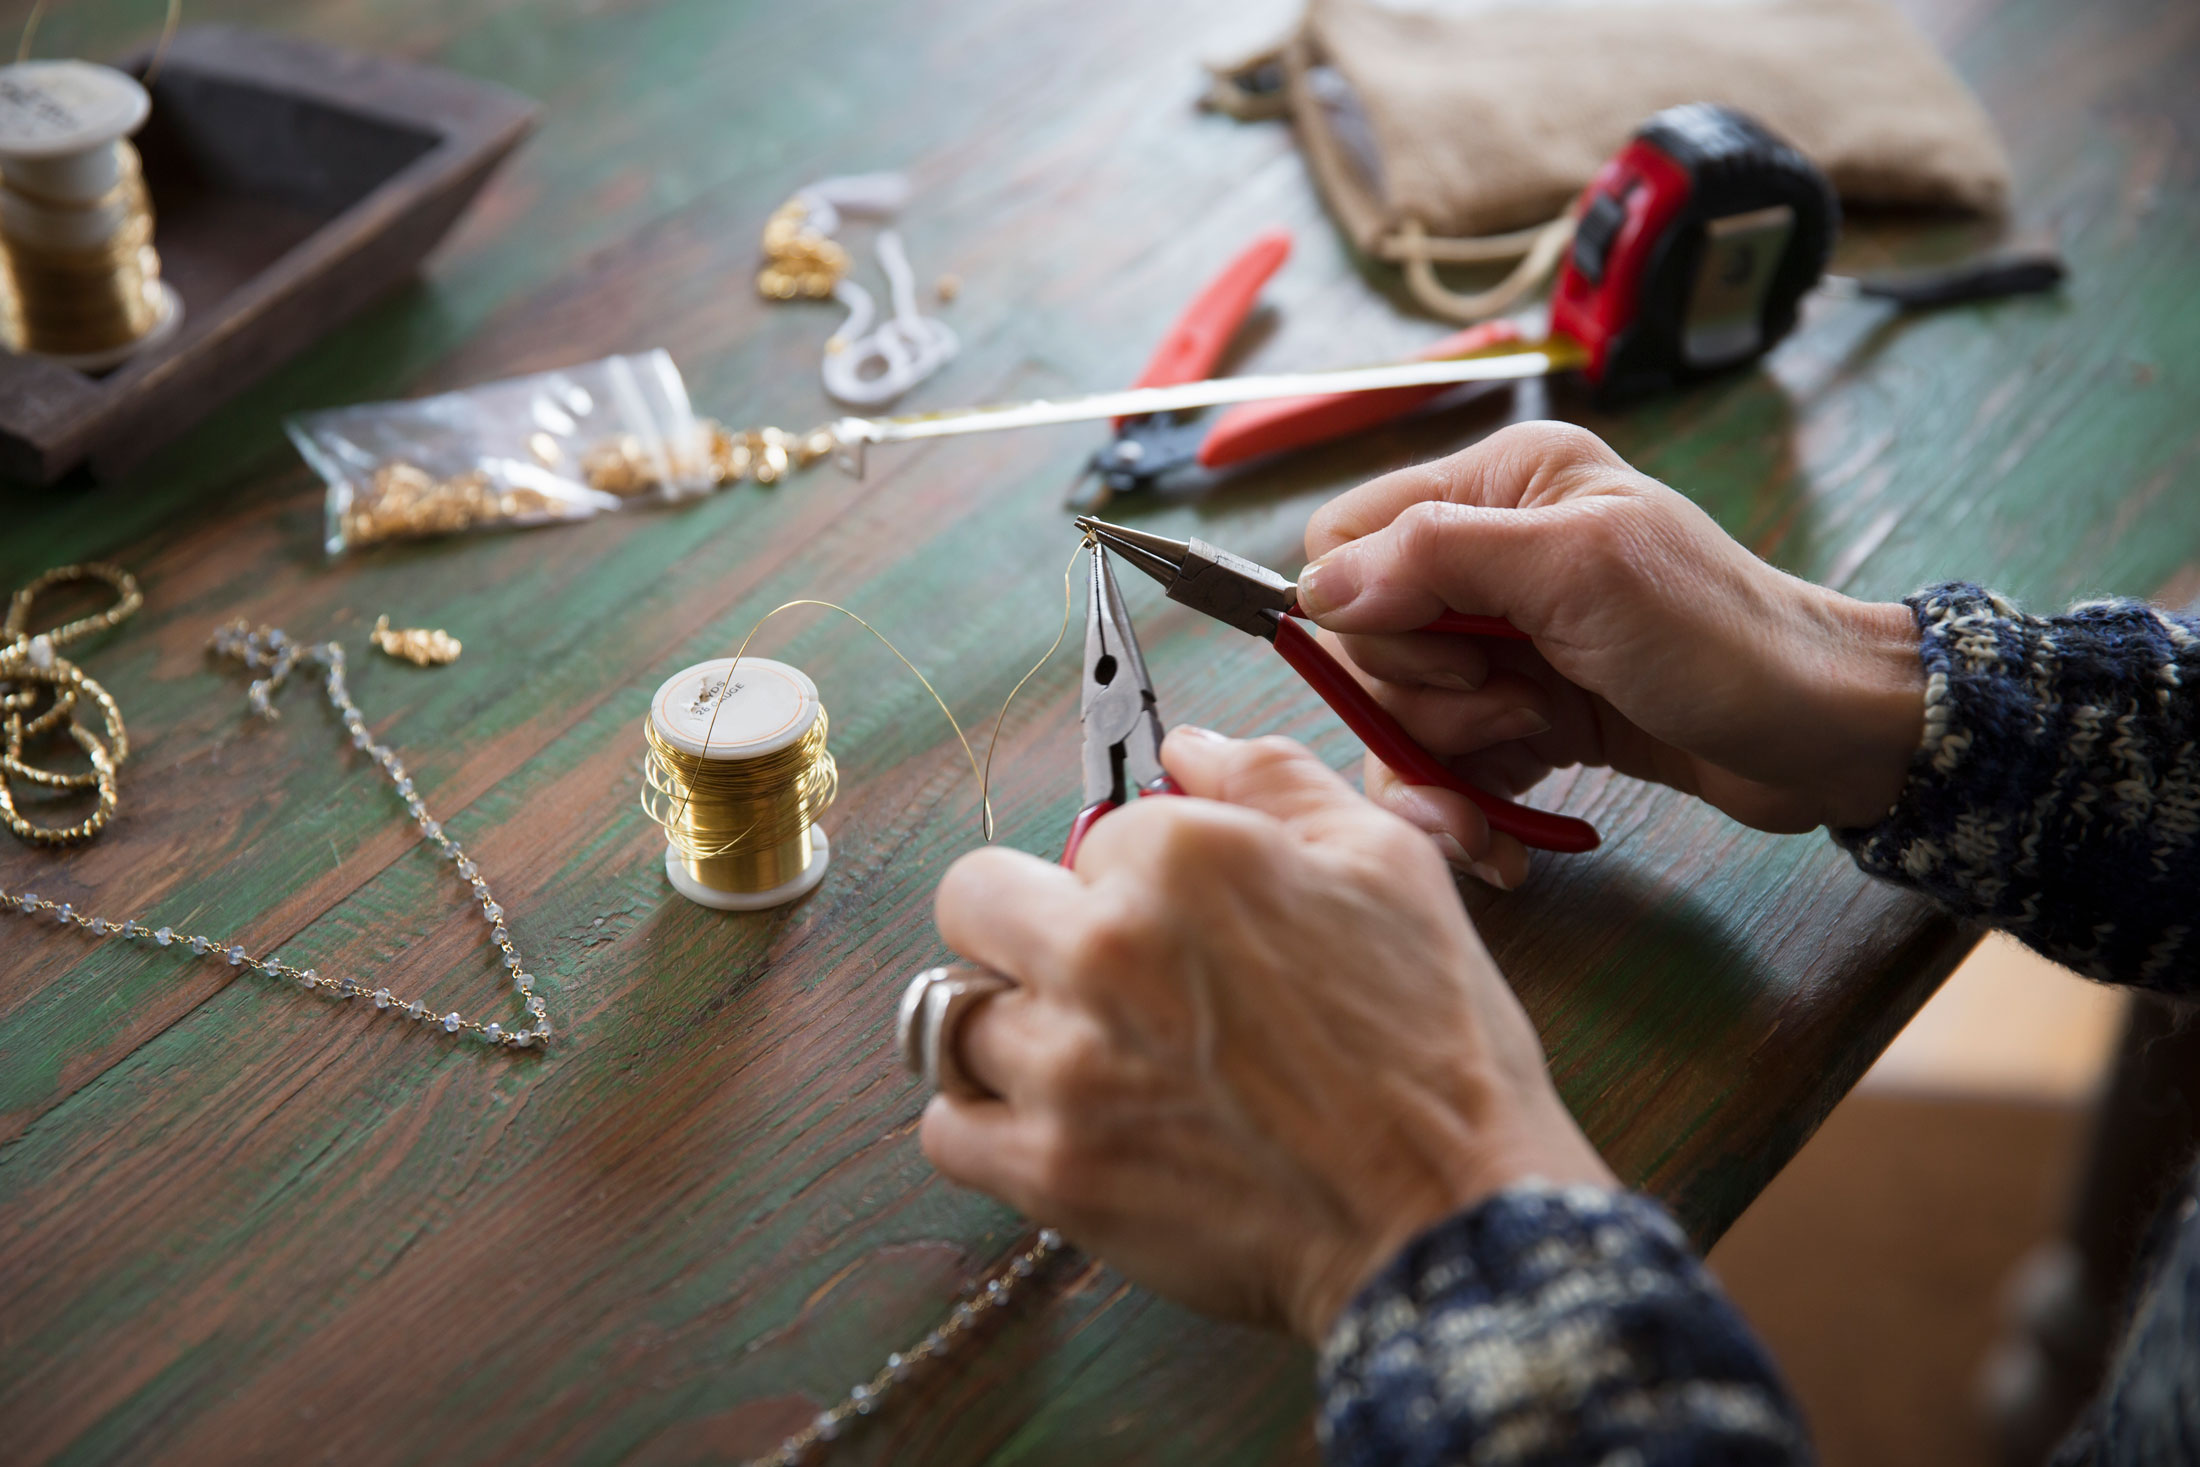 Skillful hands masterfully cutting delicate jewelry wire.